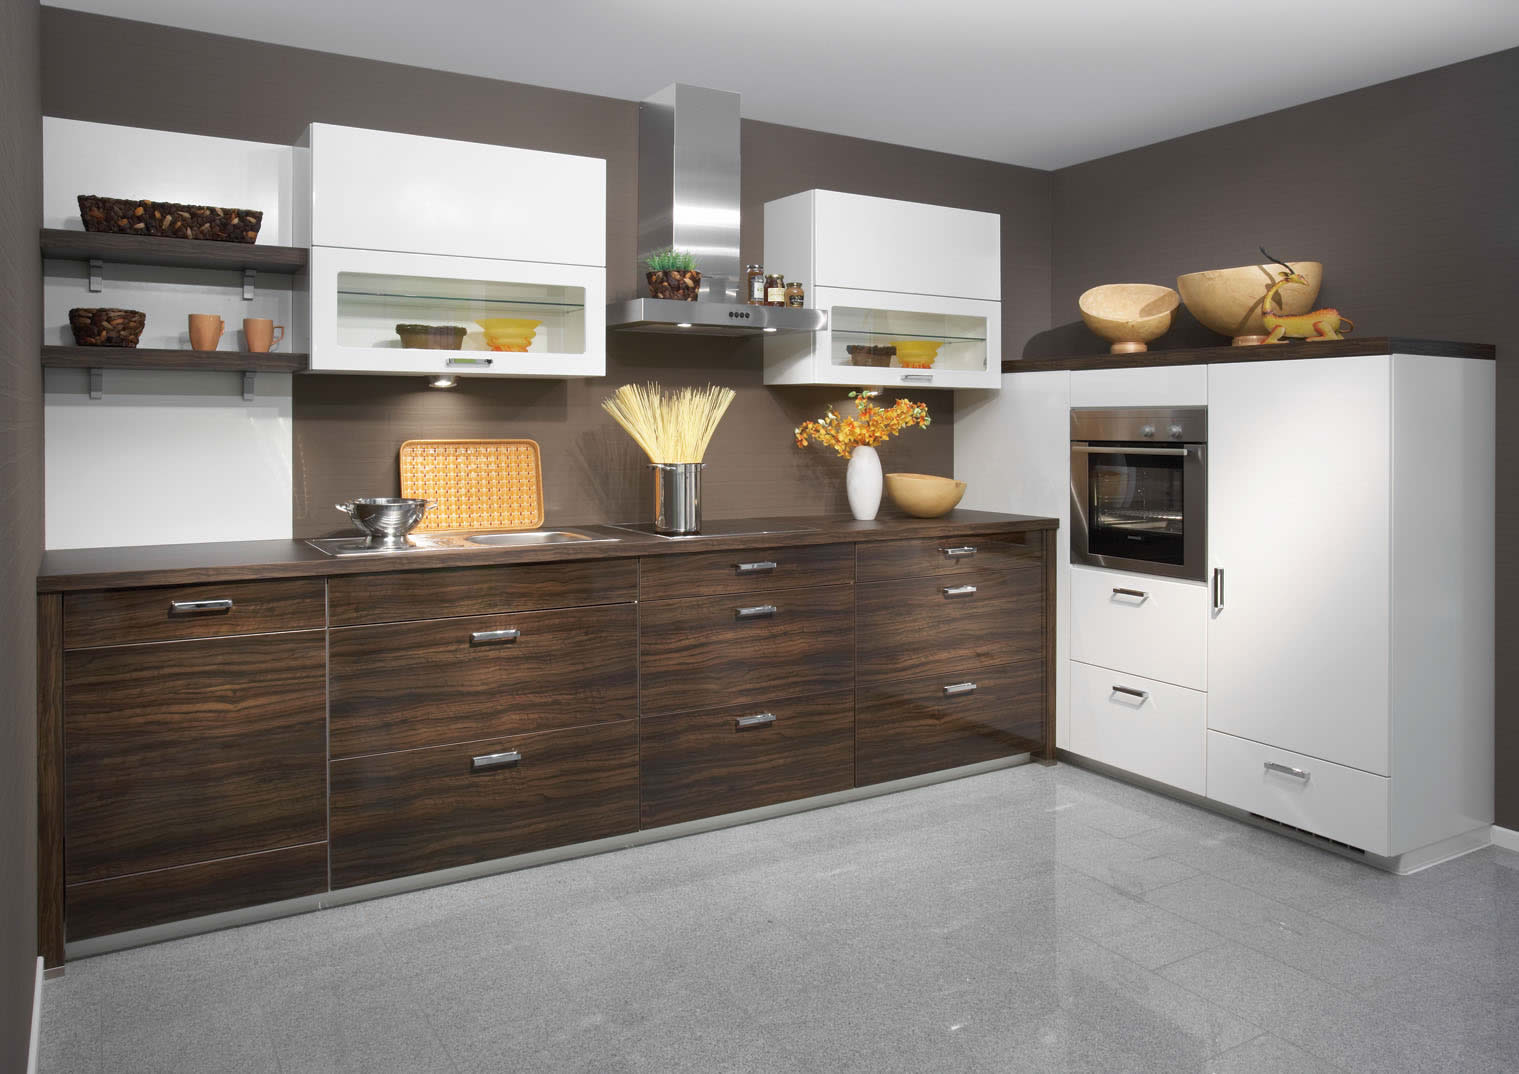 Kitchen design home luxury for I kitchen design